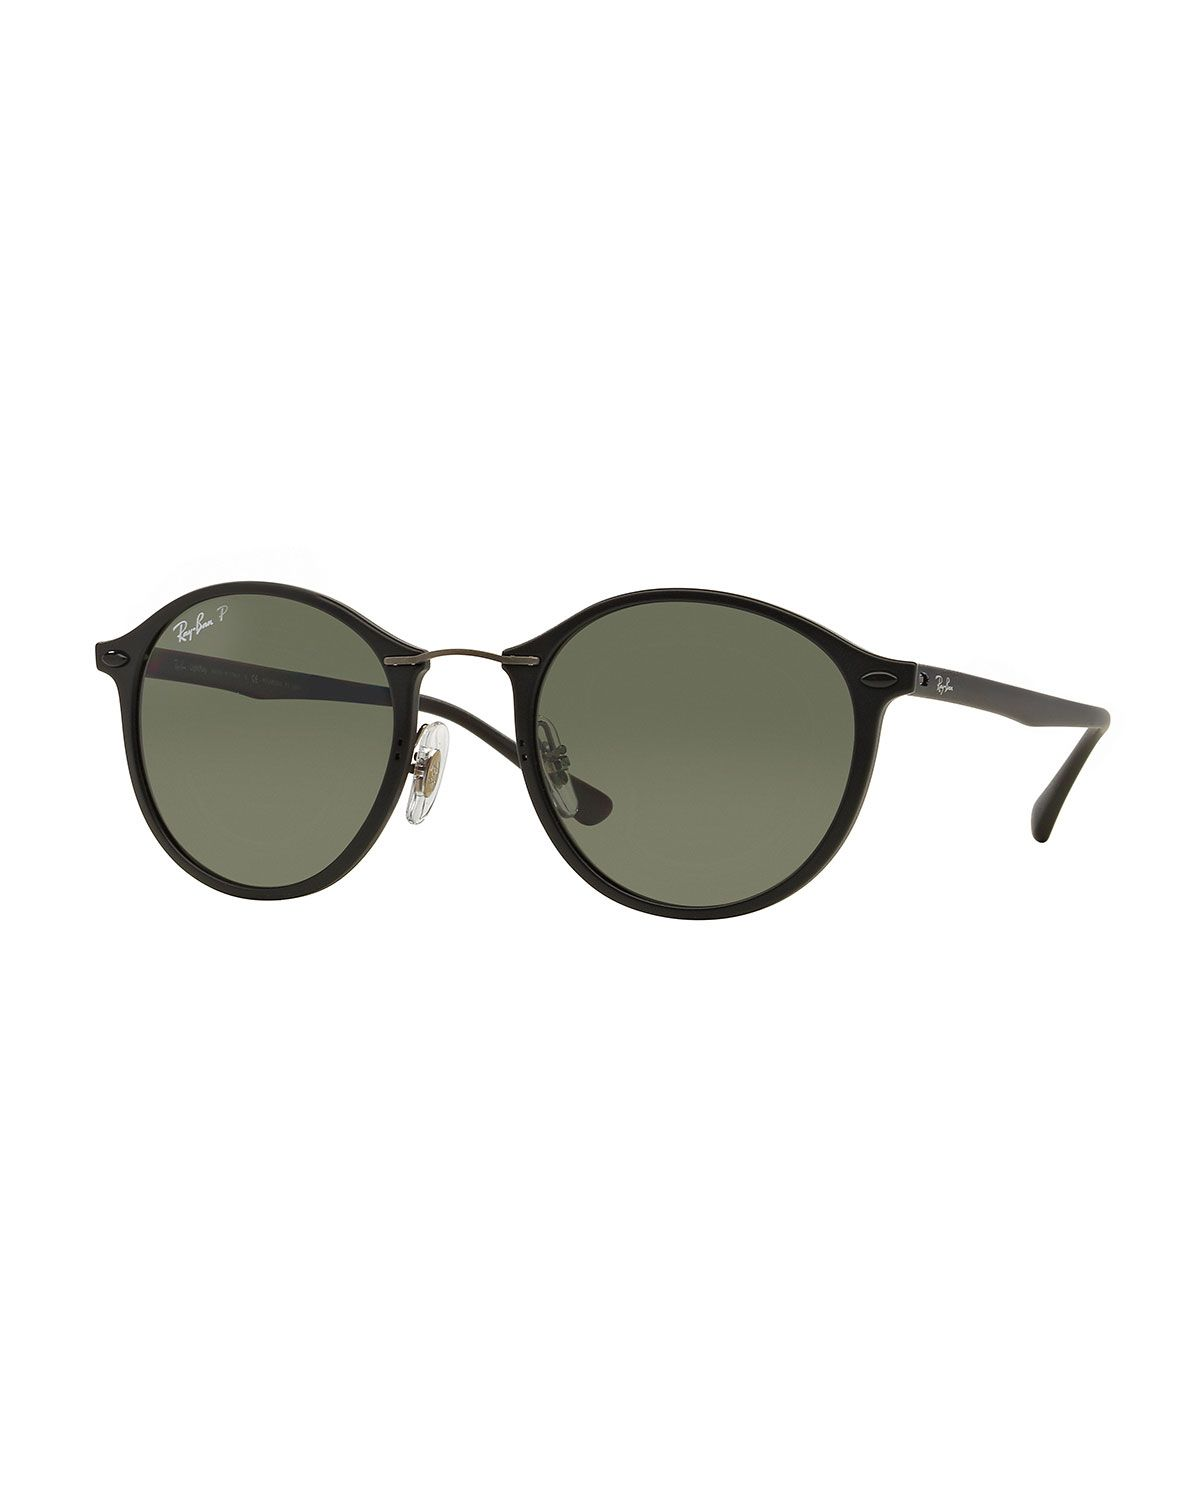 fe184a4771 Ray-Ban classic round sunglasses. Plastic frames with metal wire nose  bridge. Solid tonal lenses. Silicone nosepieces for no-slip fit.